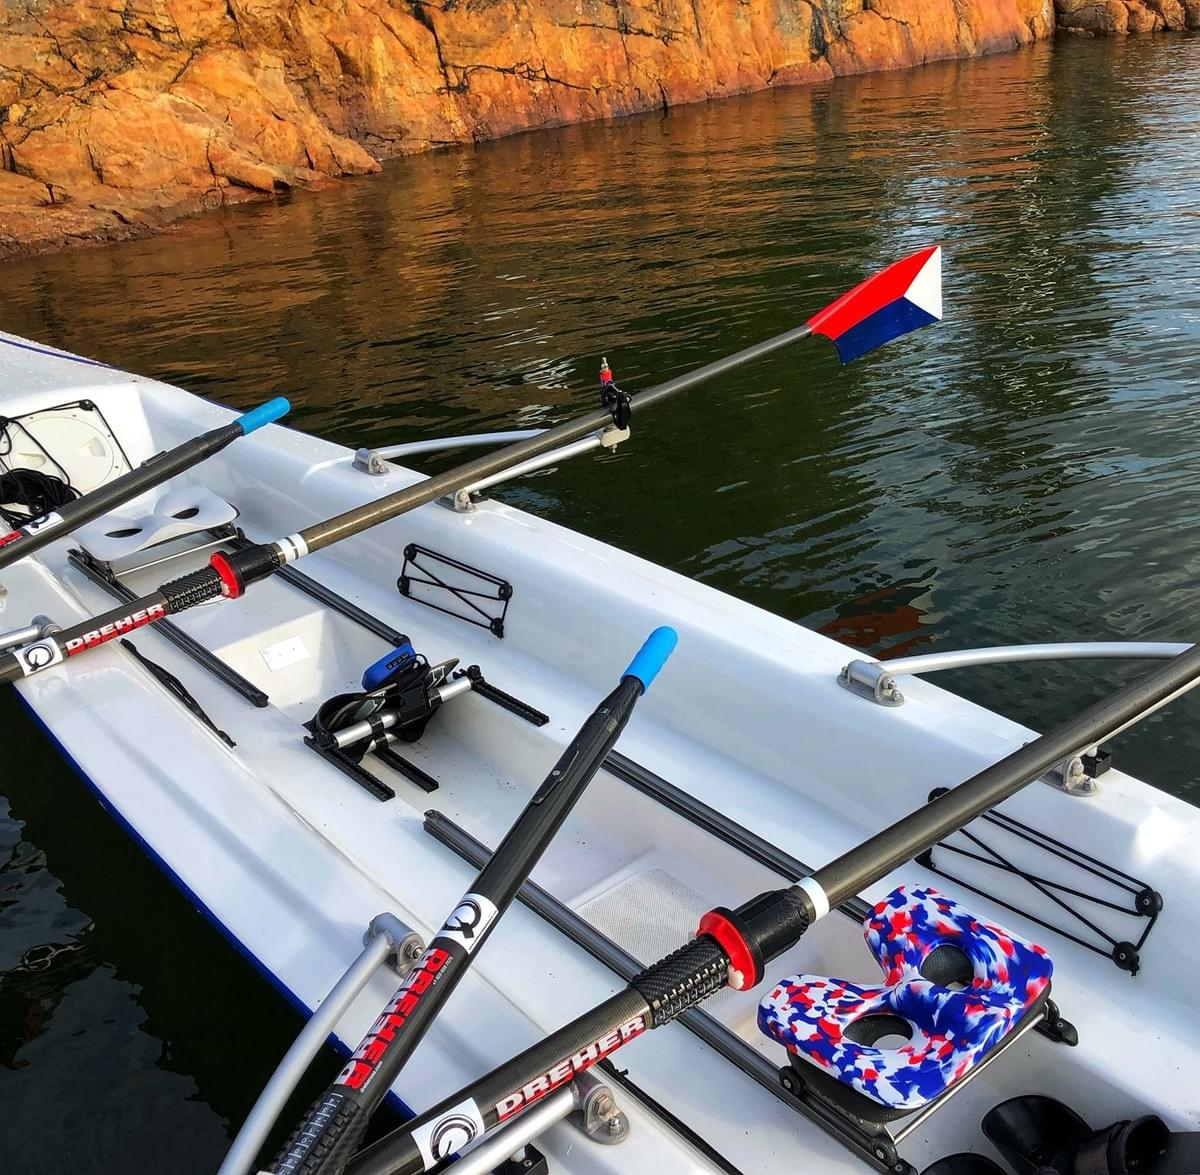 The Leo double C2X was put into good use at the race